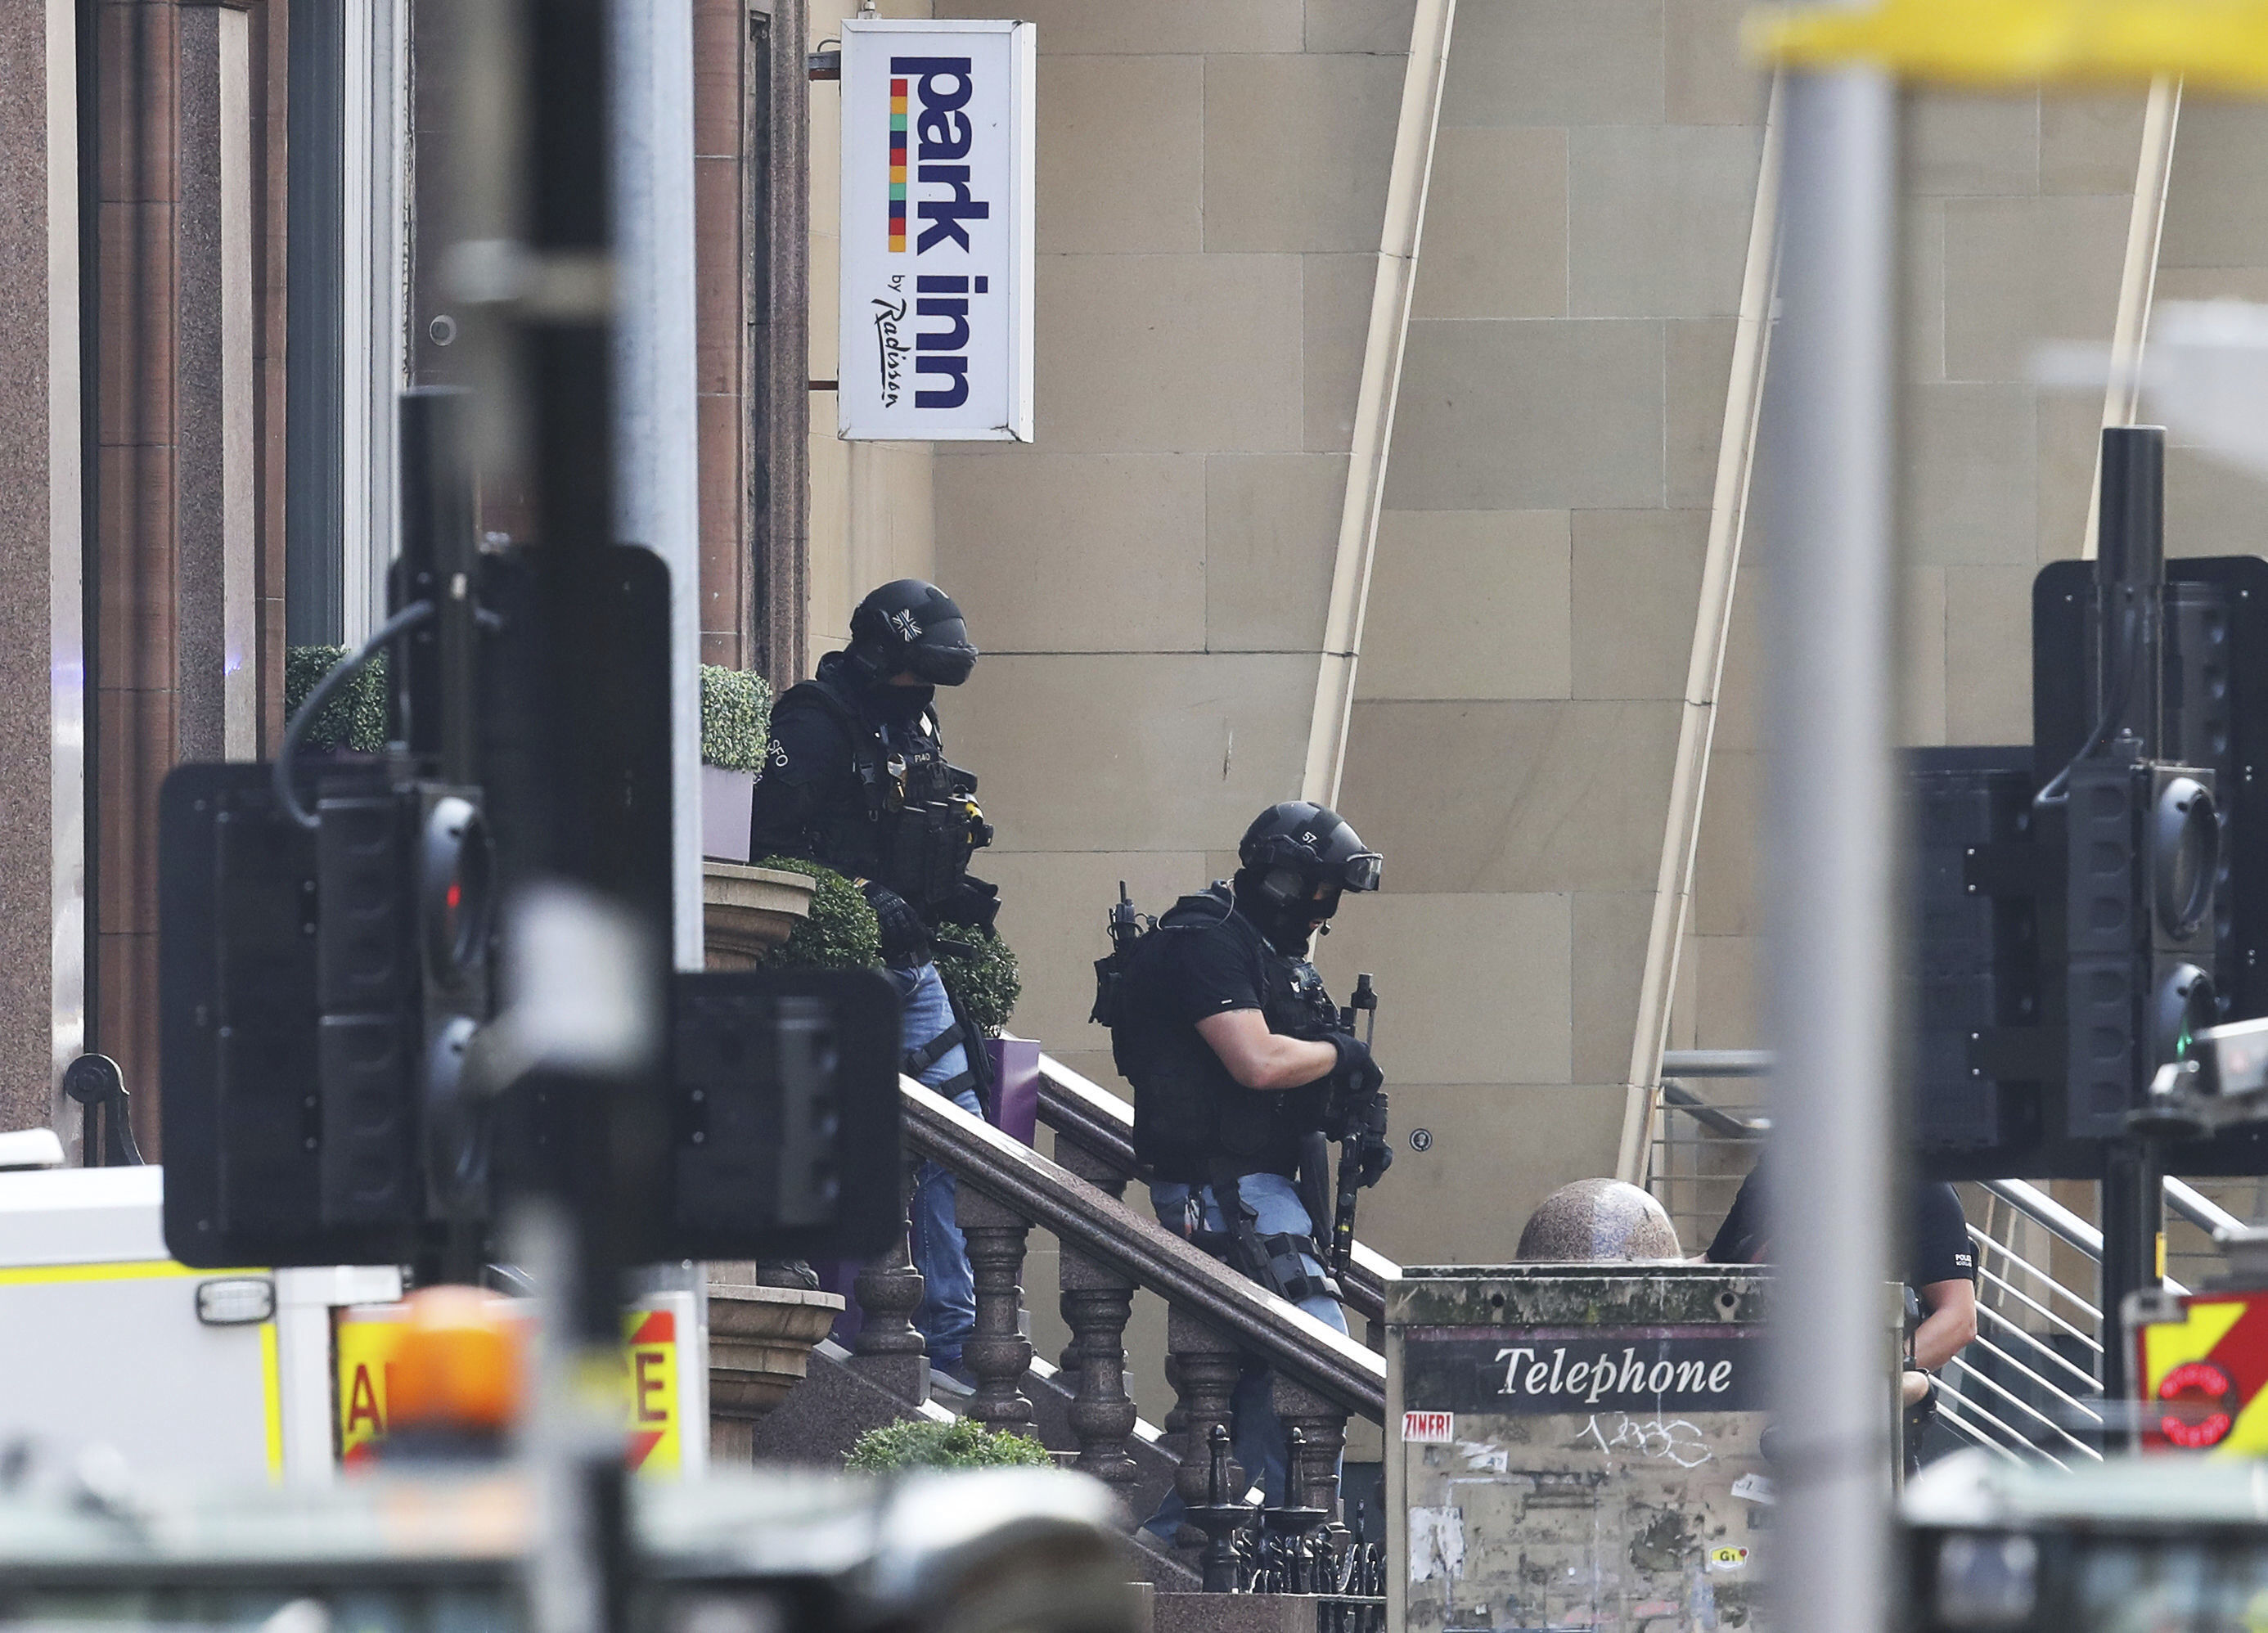 Armed police at the scene of an incident in Glasgow, Scotland, Friday June 26, 2020. Scottish police say the individual shot by armed police during an incident in Glasgow has died and that six other people including a police officer are in hospital being treated for their injuries. Photo: AP